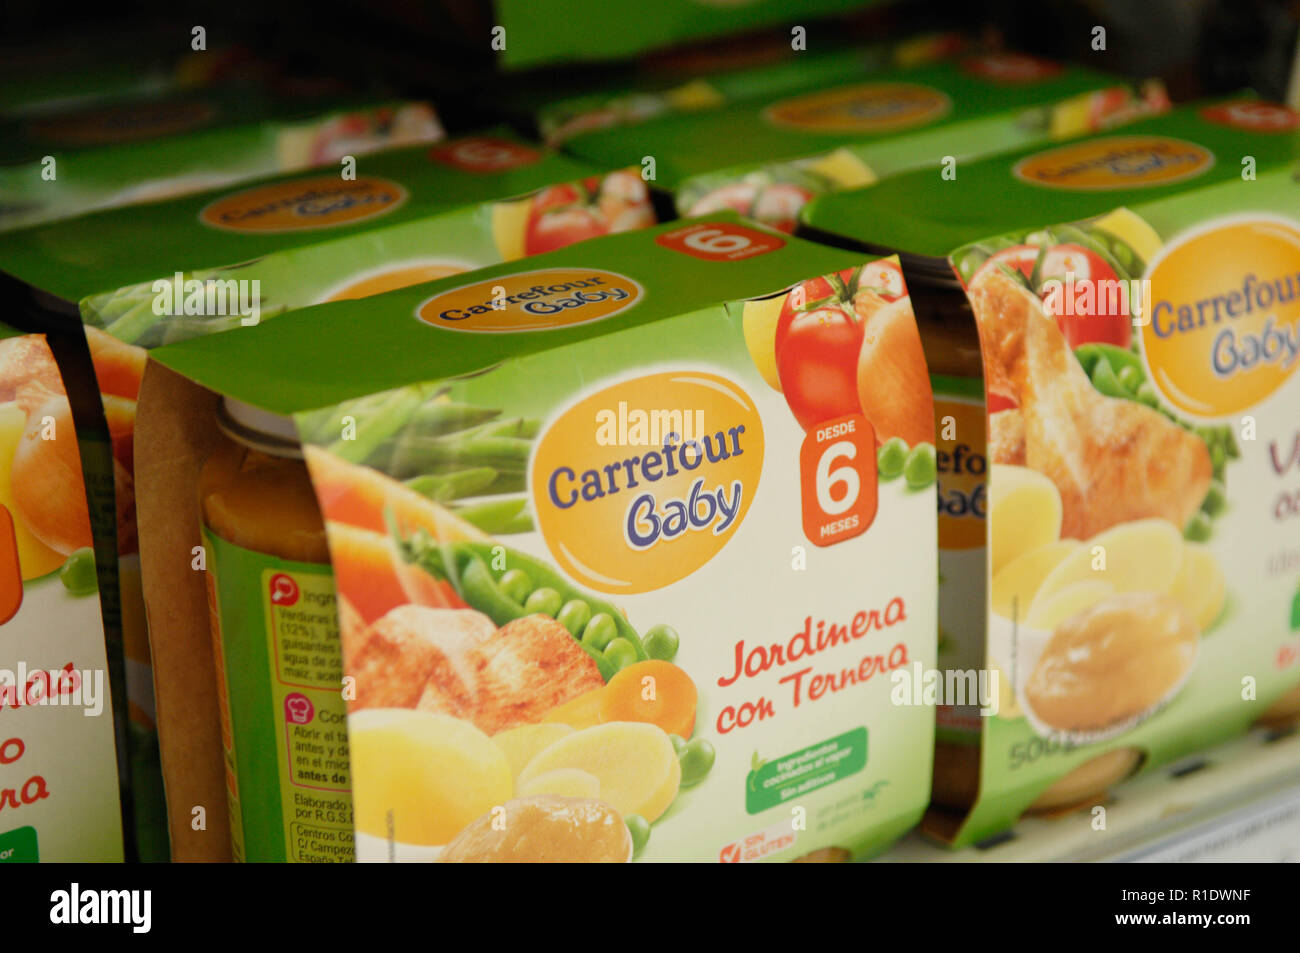 Carrefour baby,puree Stock Photo  224655019 - Alamy f3c2fbfb980